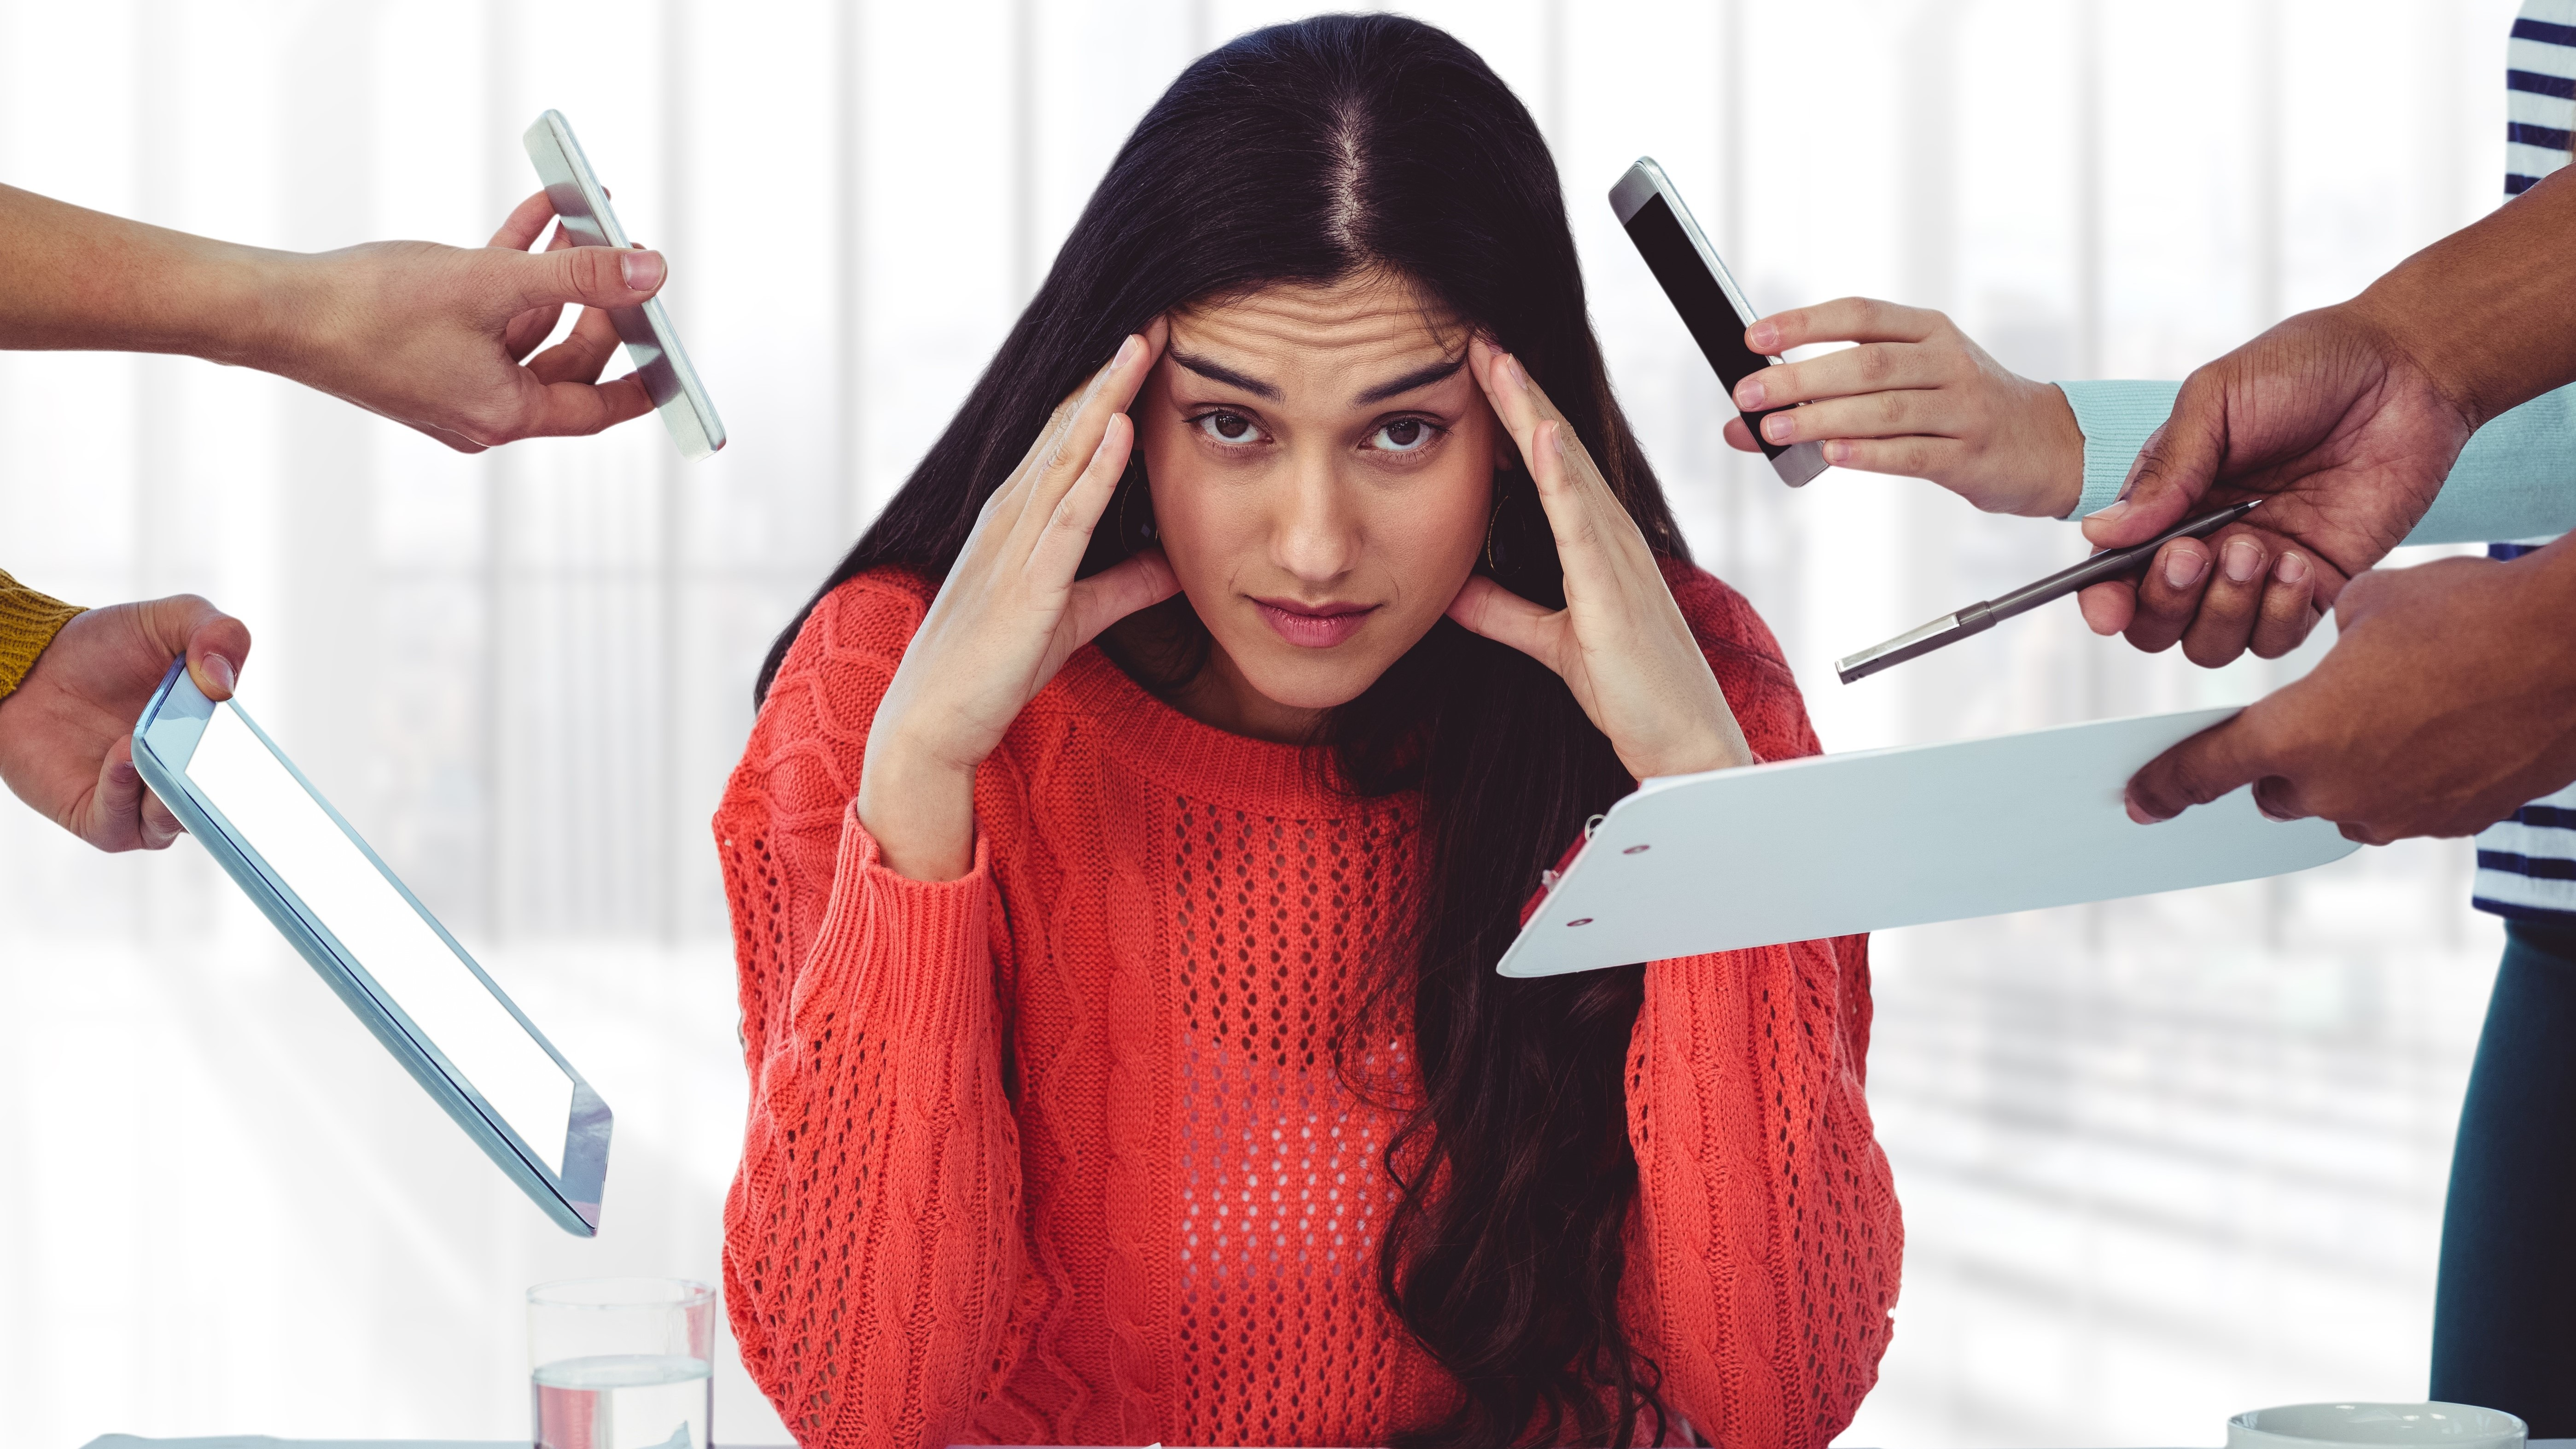 Stresssed Woman Sitting With Hands On Forehead In Office